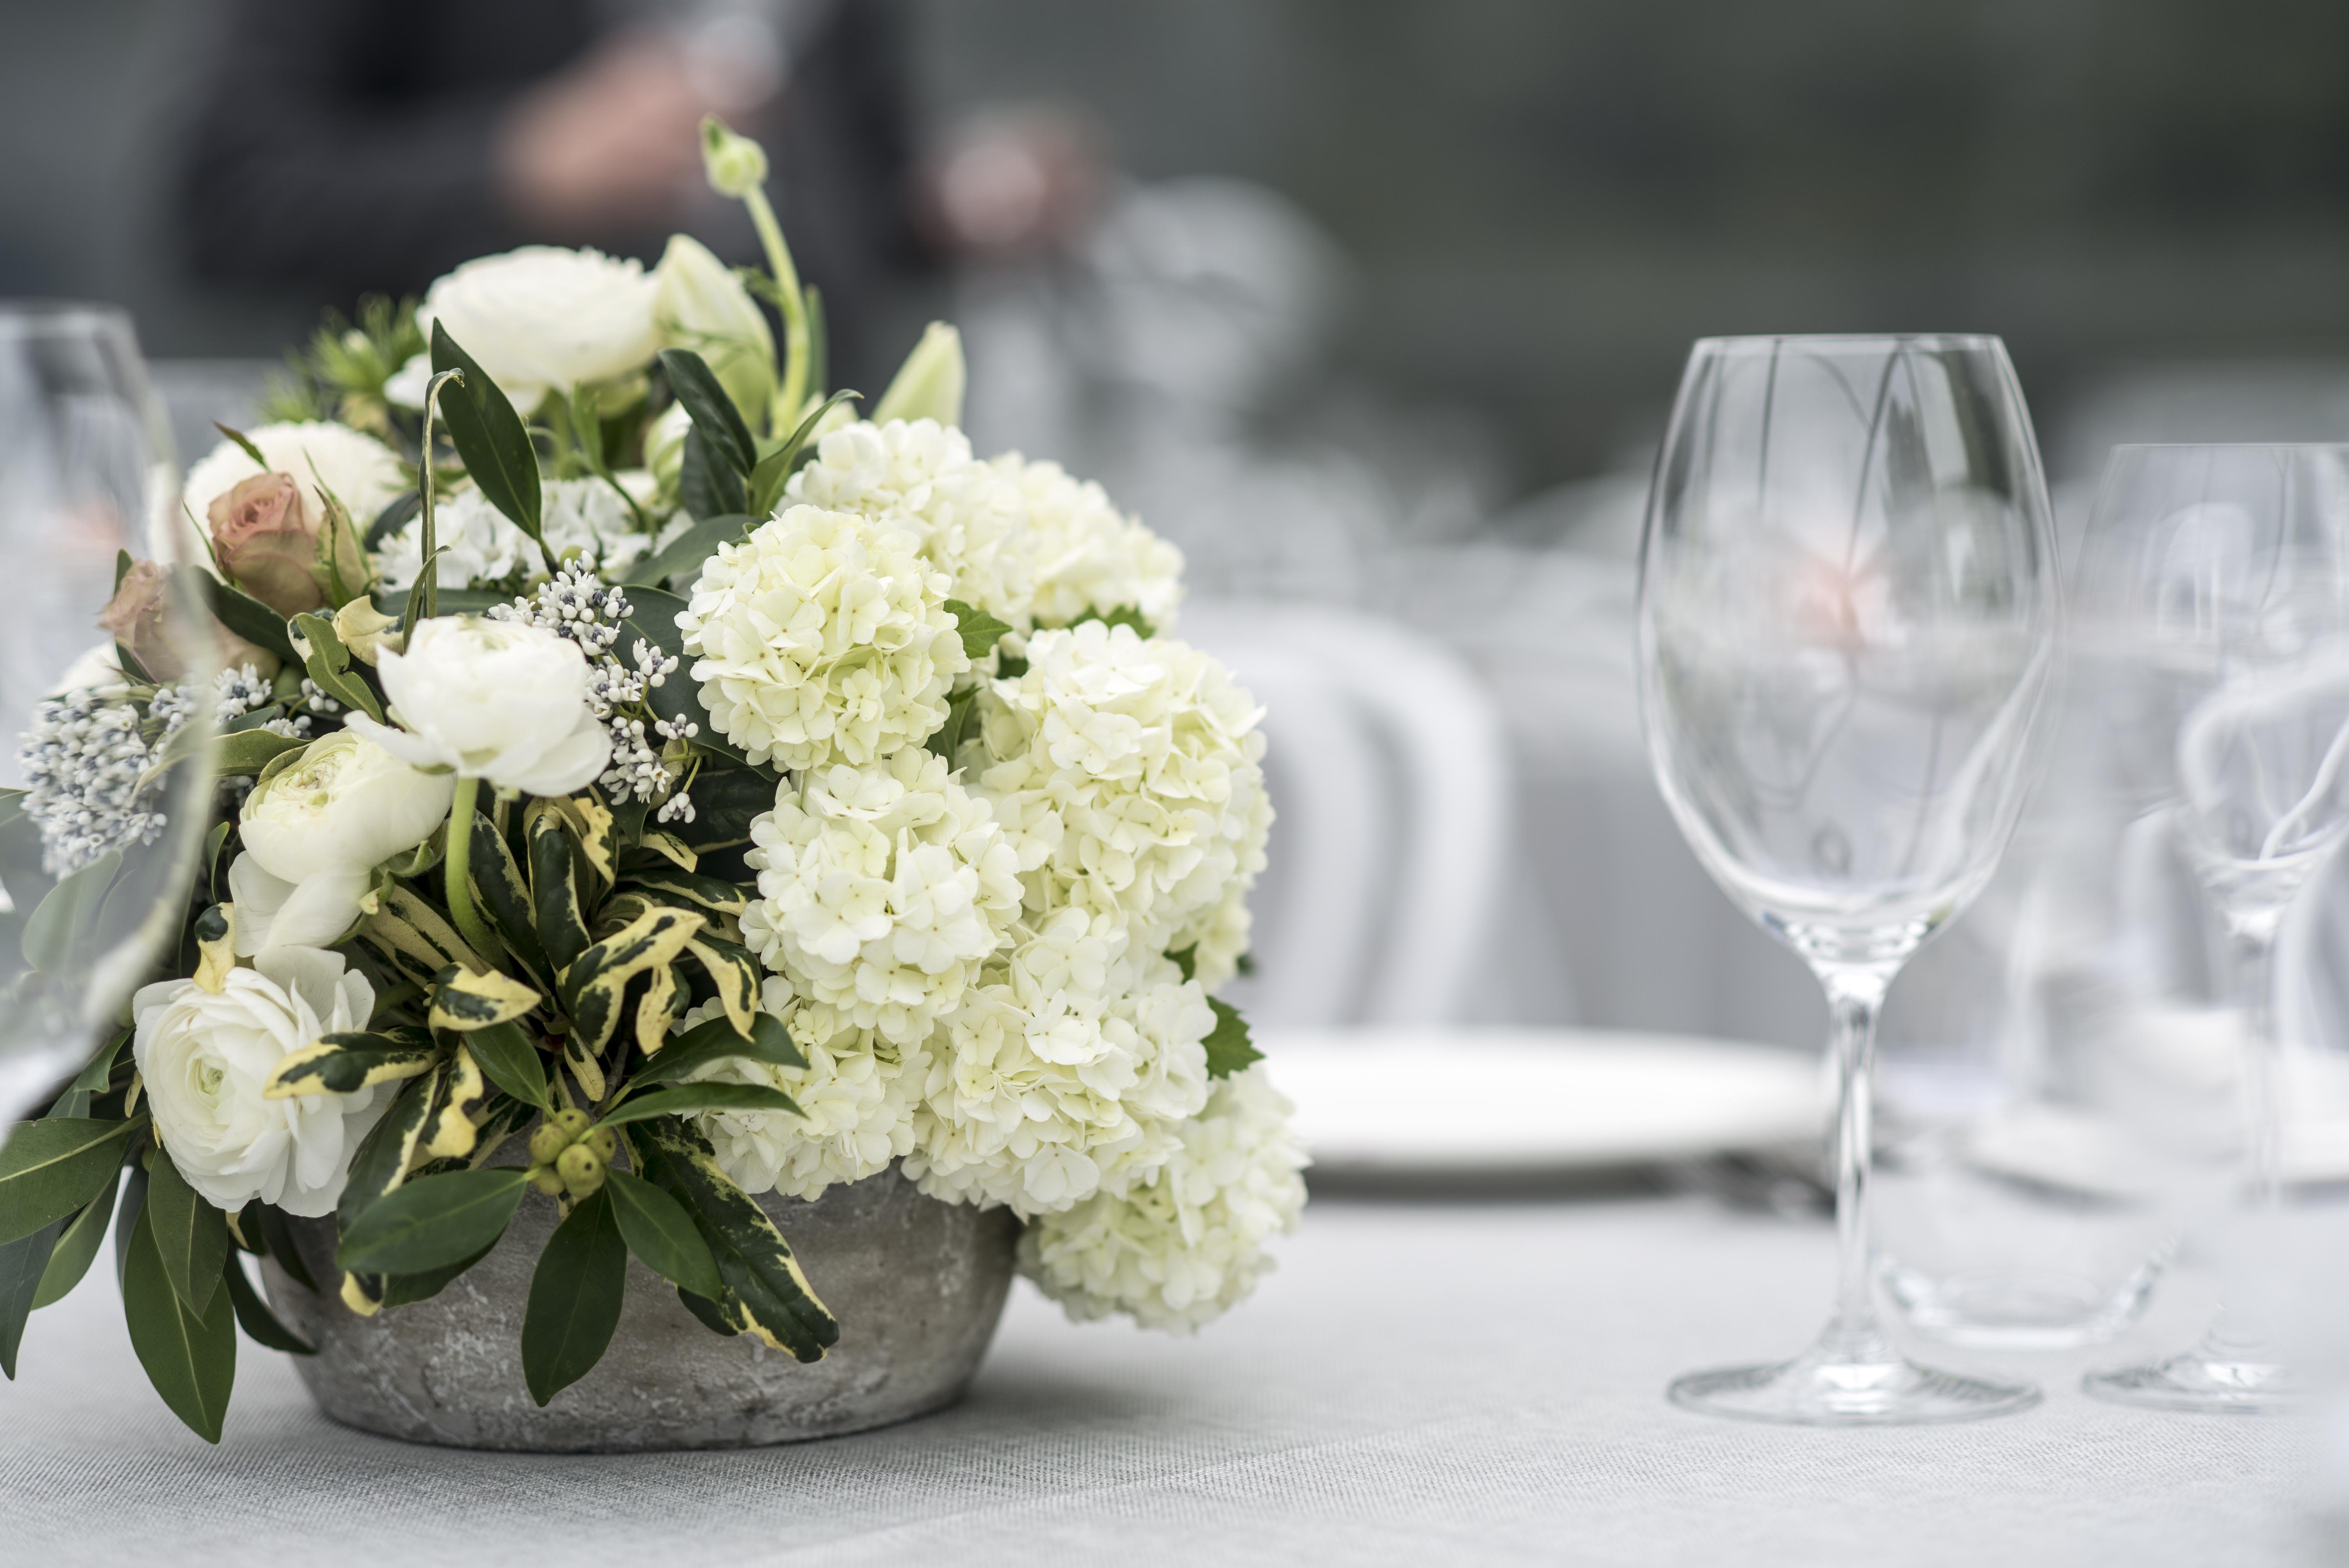 Cream & green low guest table centrepiece